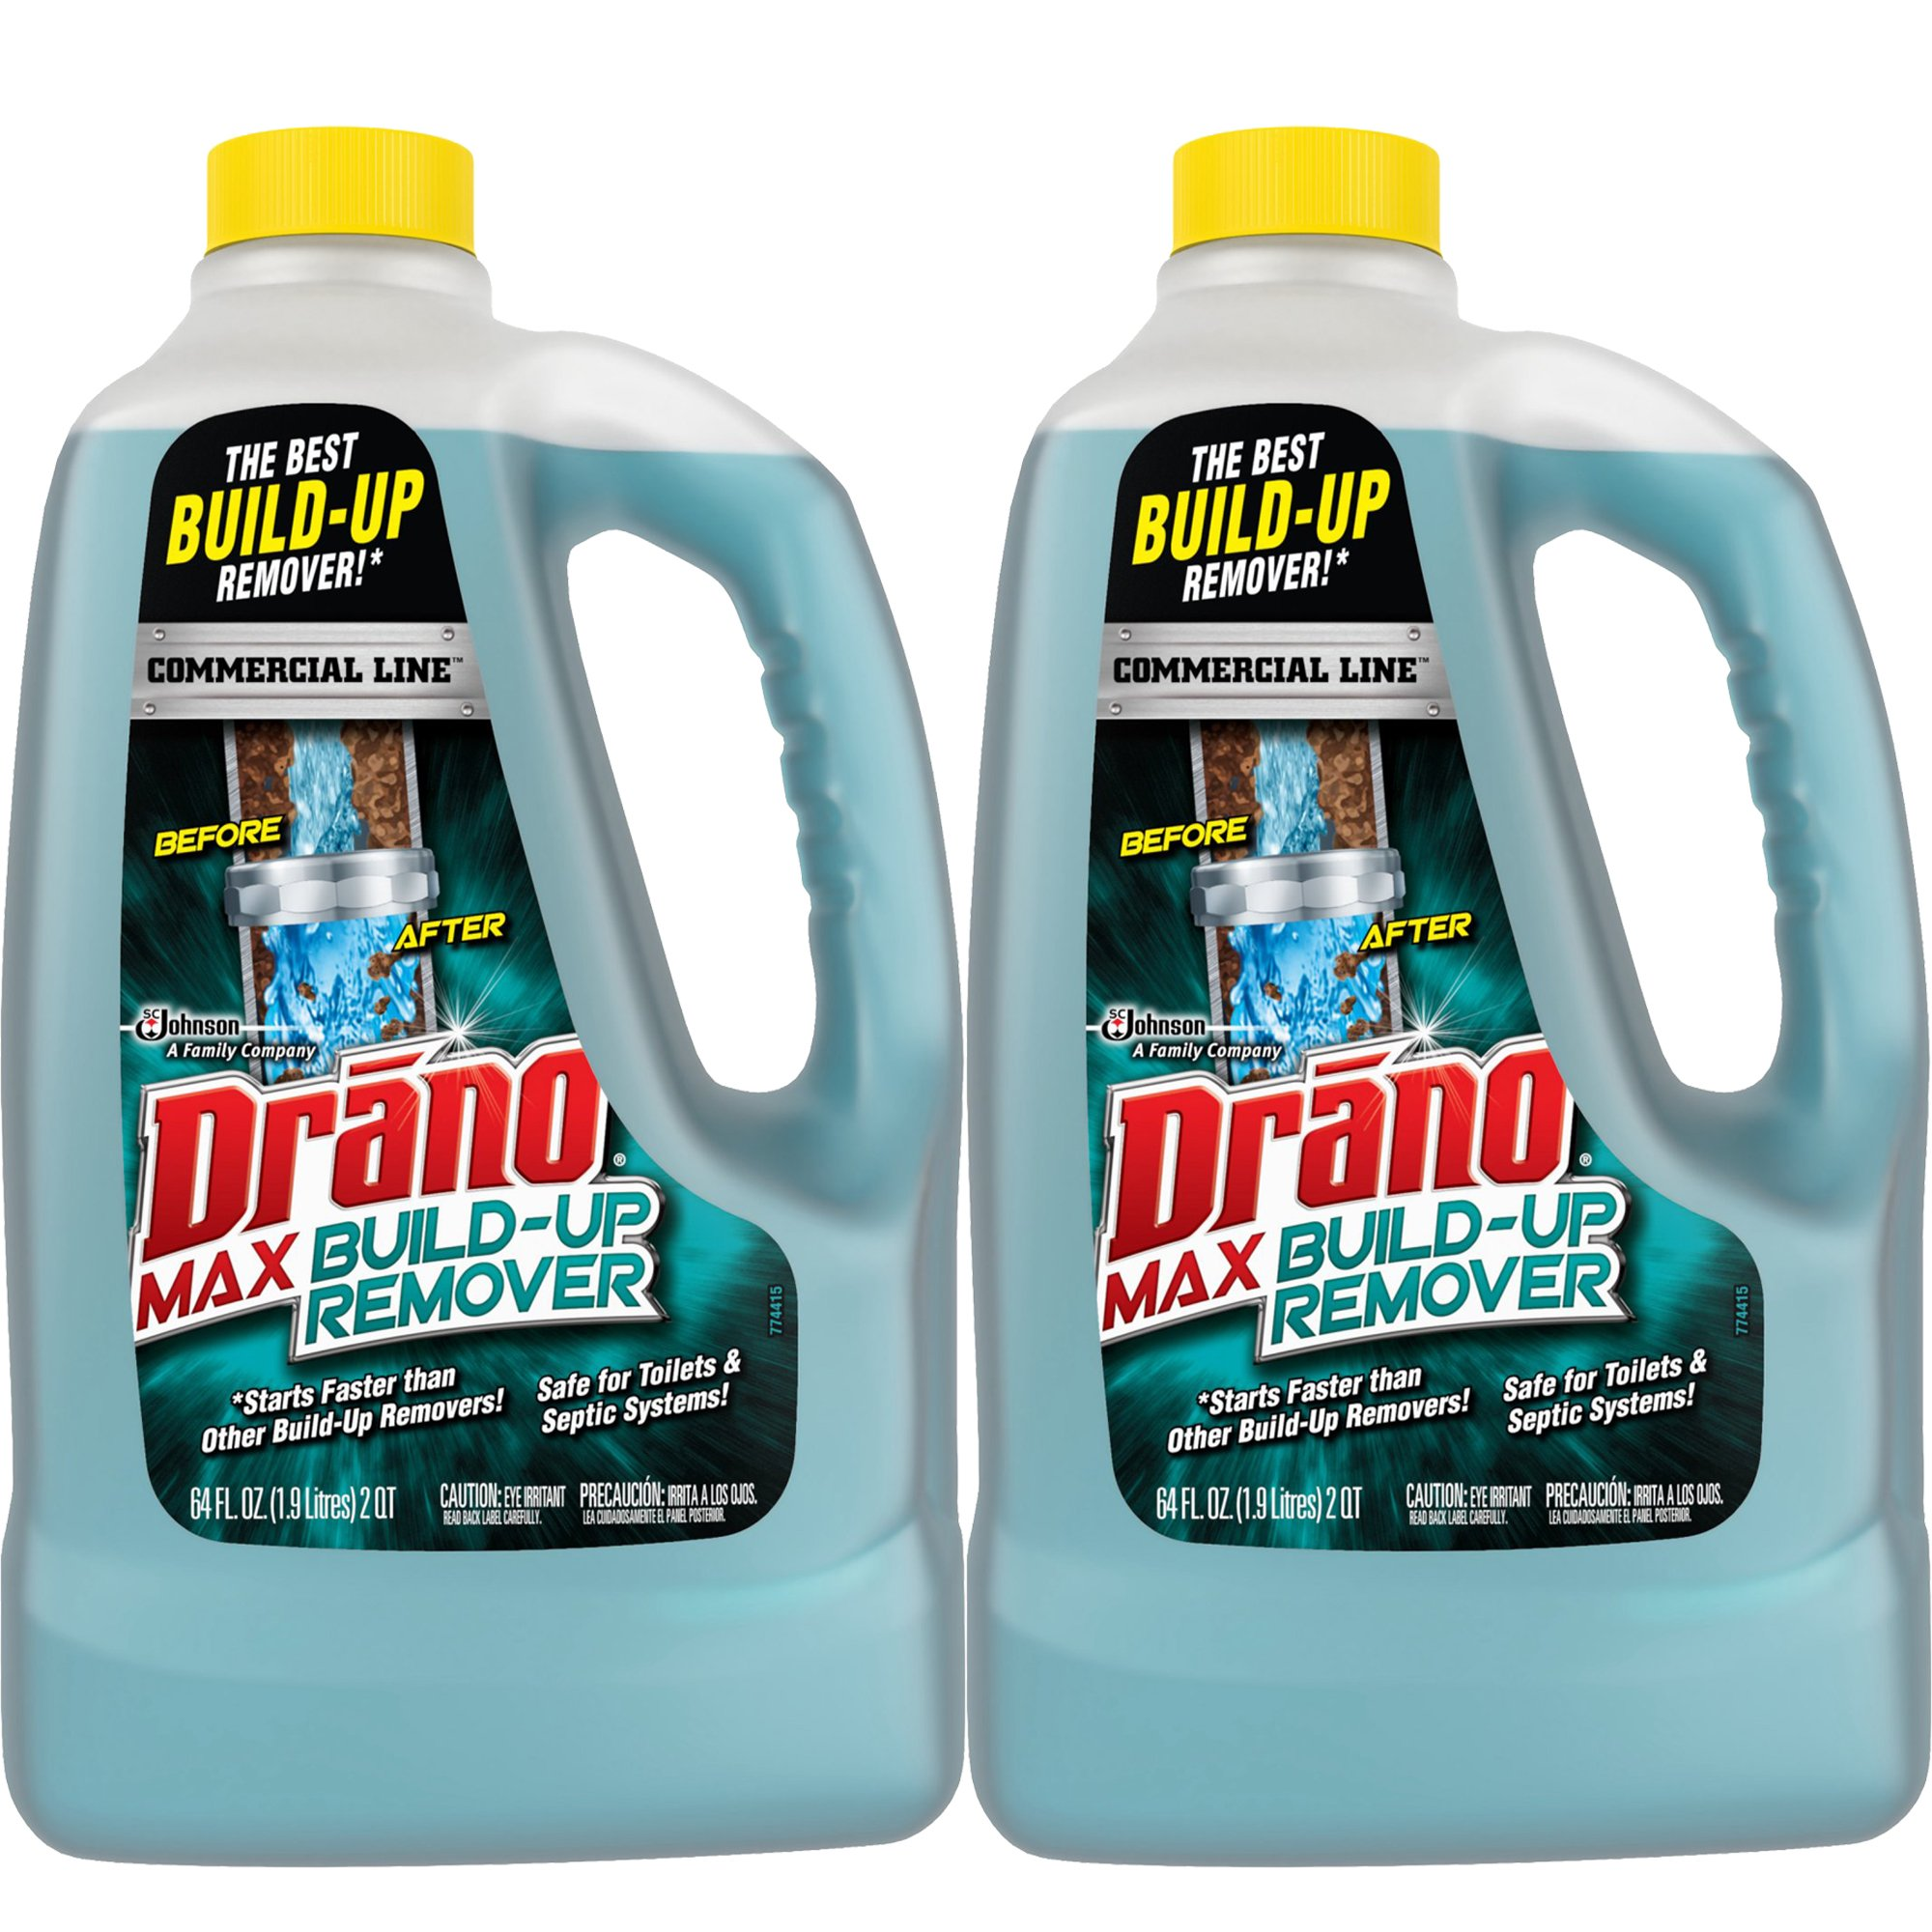 Drano Commercial Line Max Build-Up Remover 64 Ounces, 2-Pack